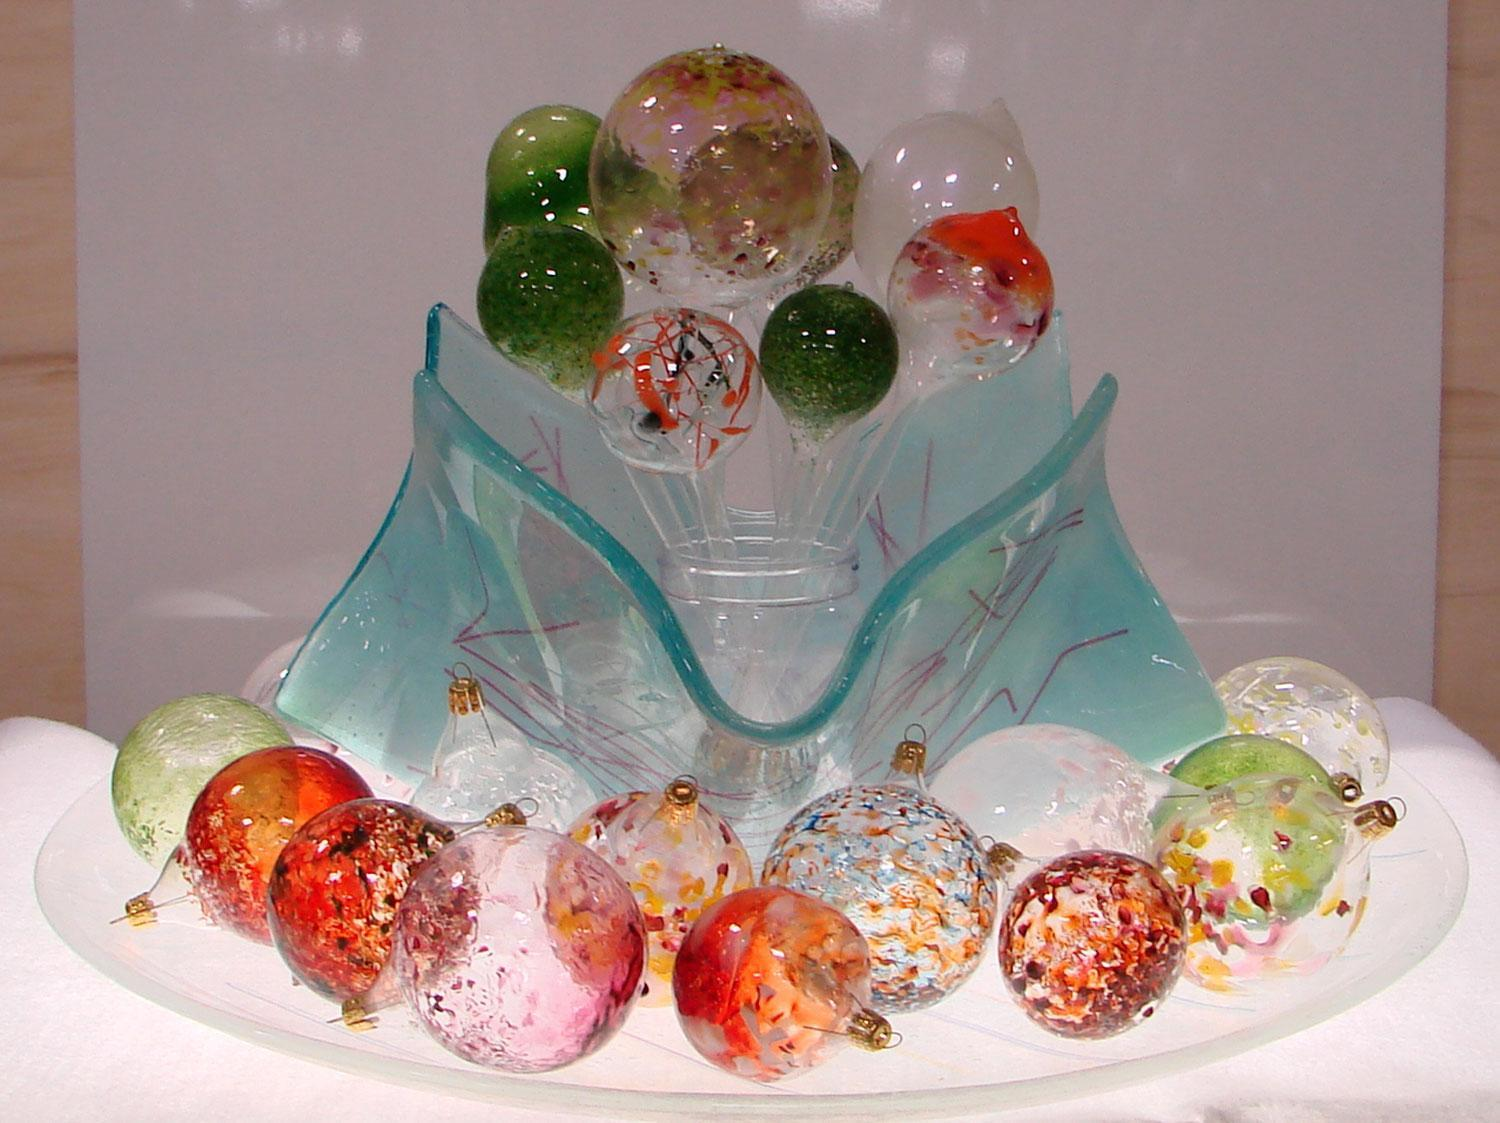 Hand blown clear glass ornaments - Glaskolben Blown Glass Ornaments Kit 207325_1 Thumbnail Image 207325_2 Thumbnail Image 207325_3 Thumbnail Image 207325_4 Thumbnail Image